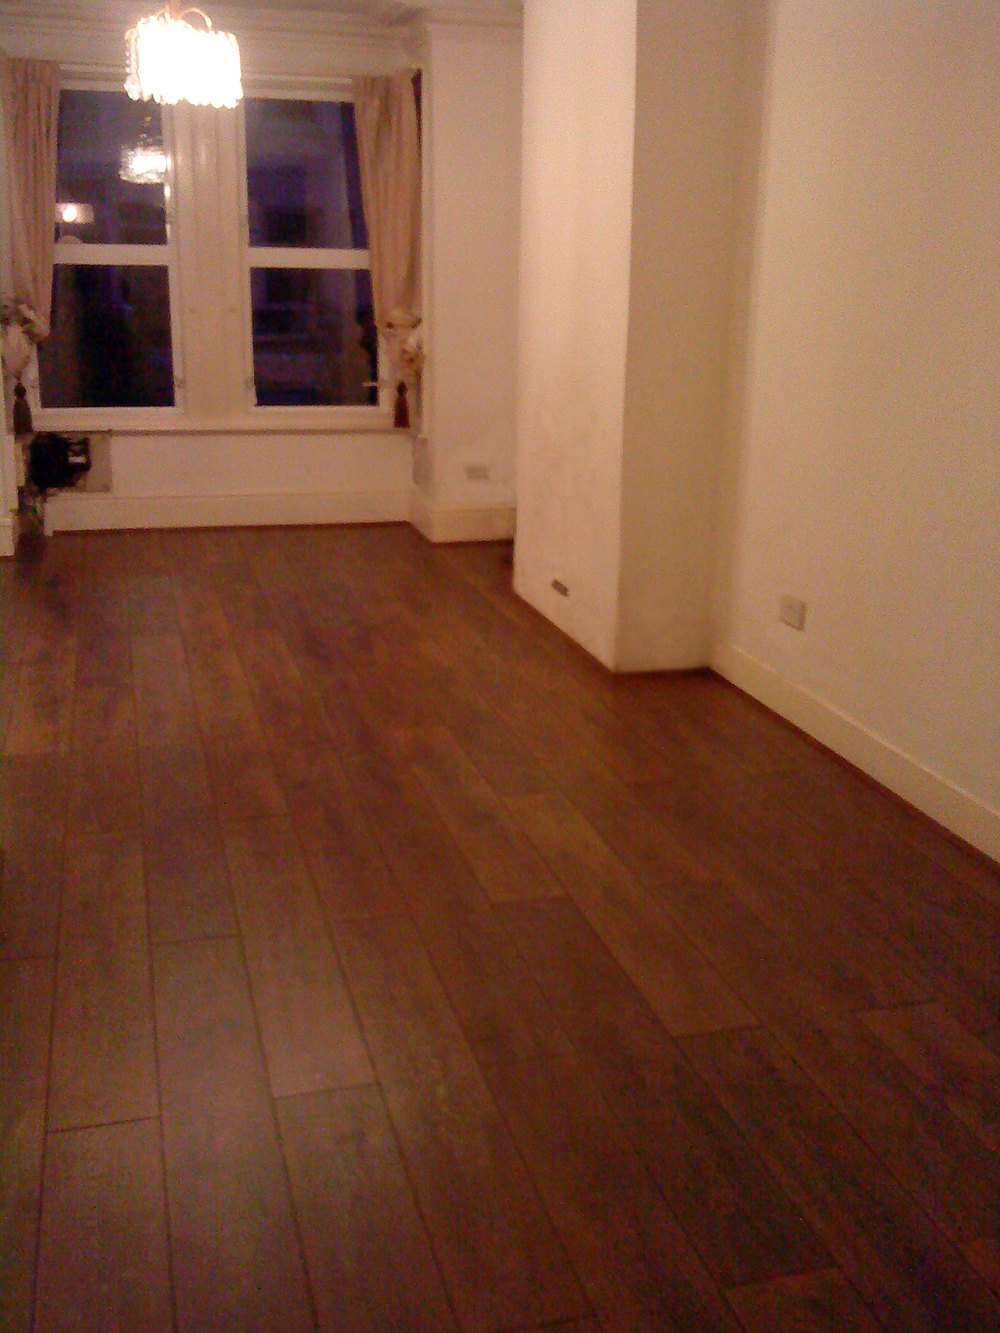 laminatefloor-after.jpg